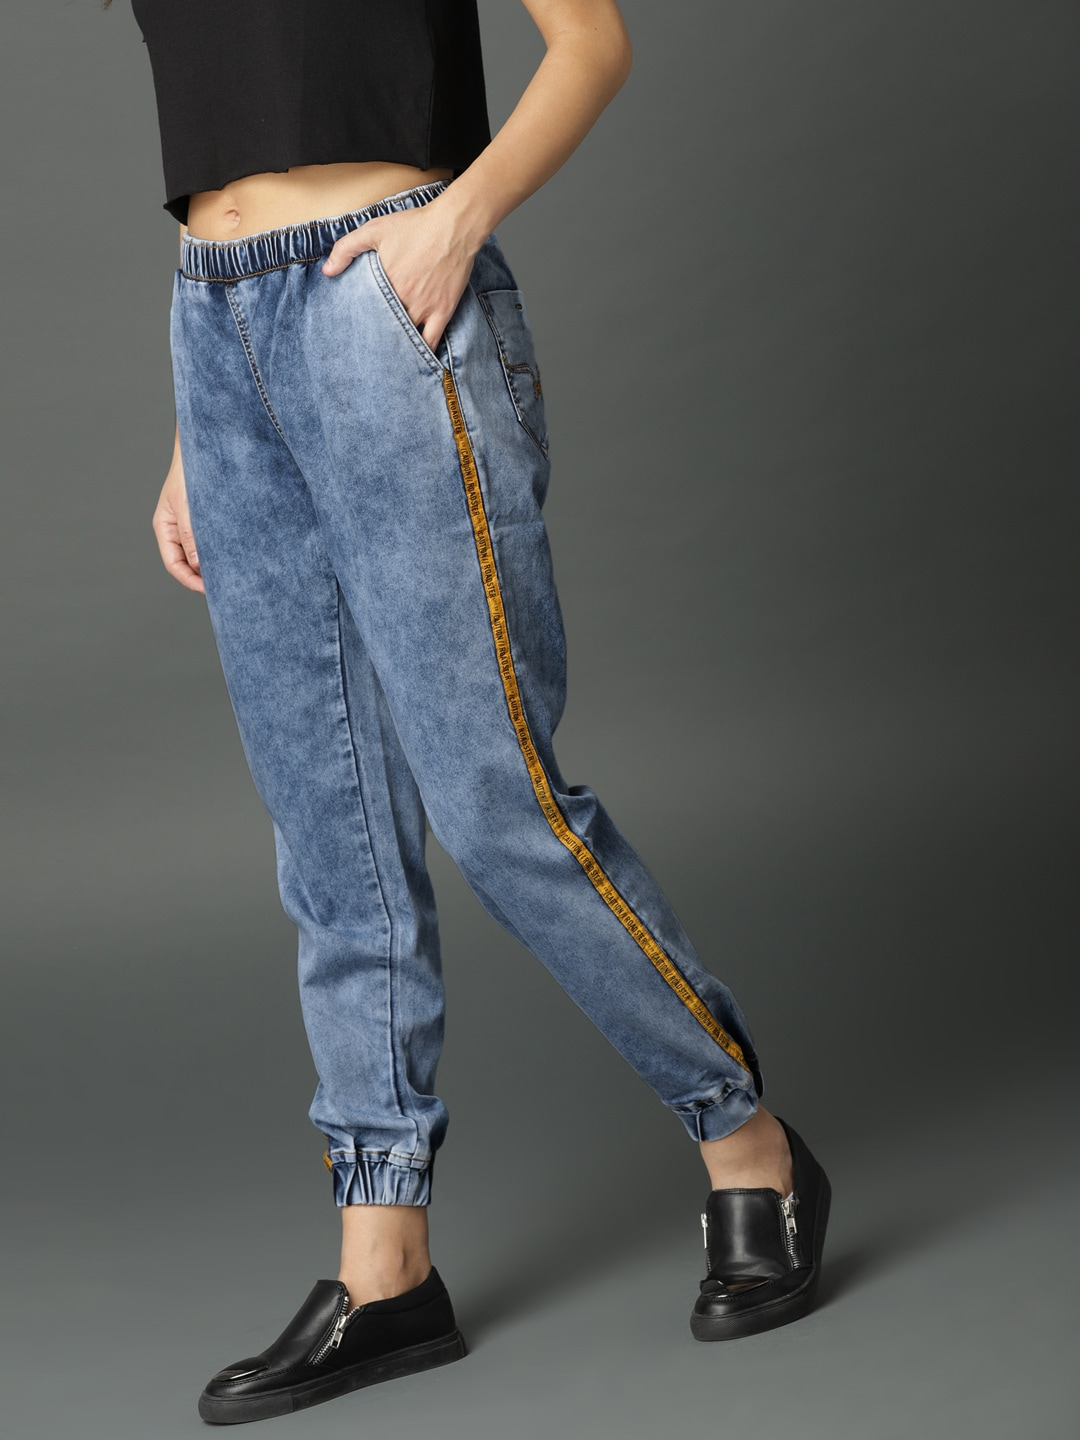 Jogger Jeans Buy Online In India Joger Riped